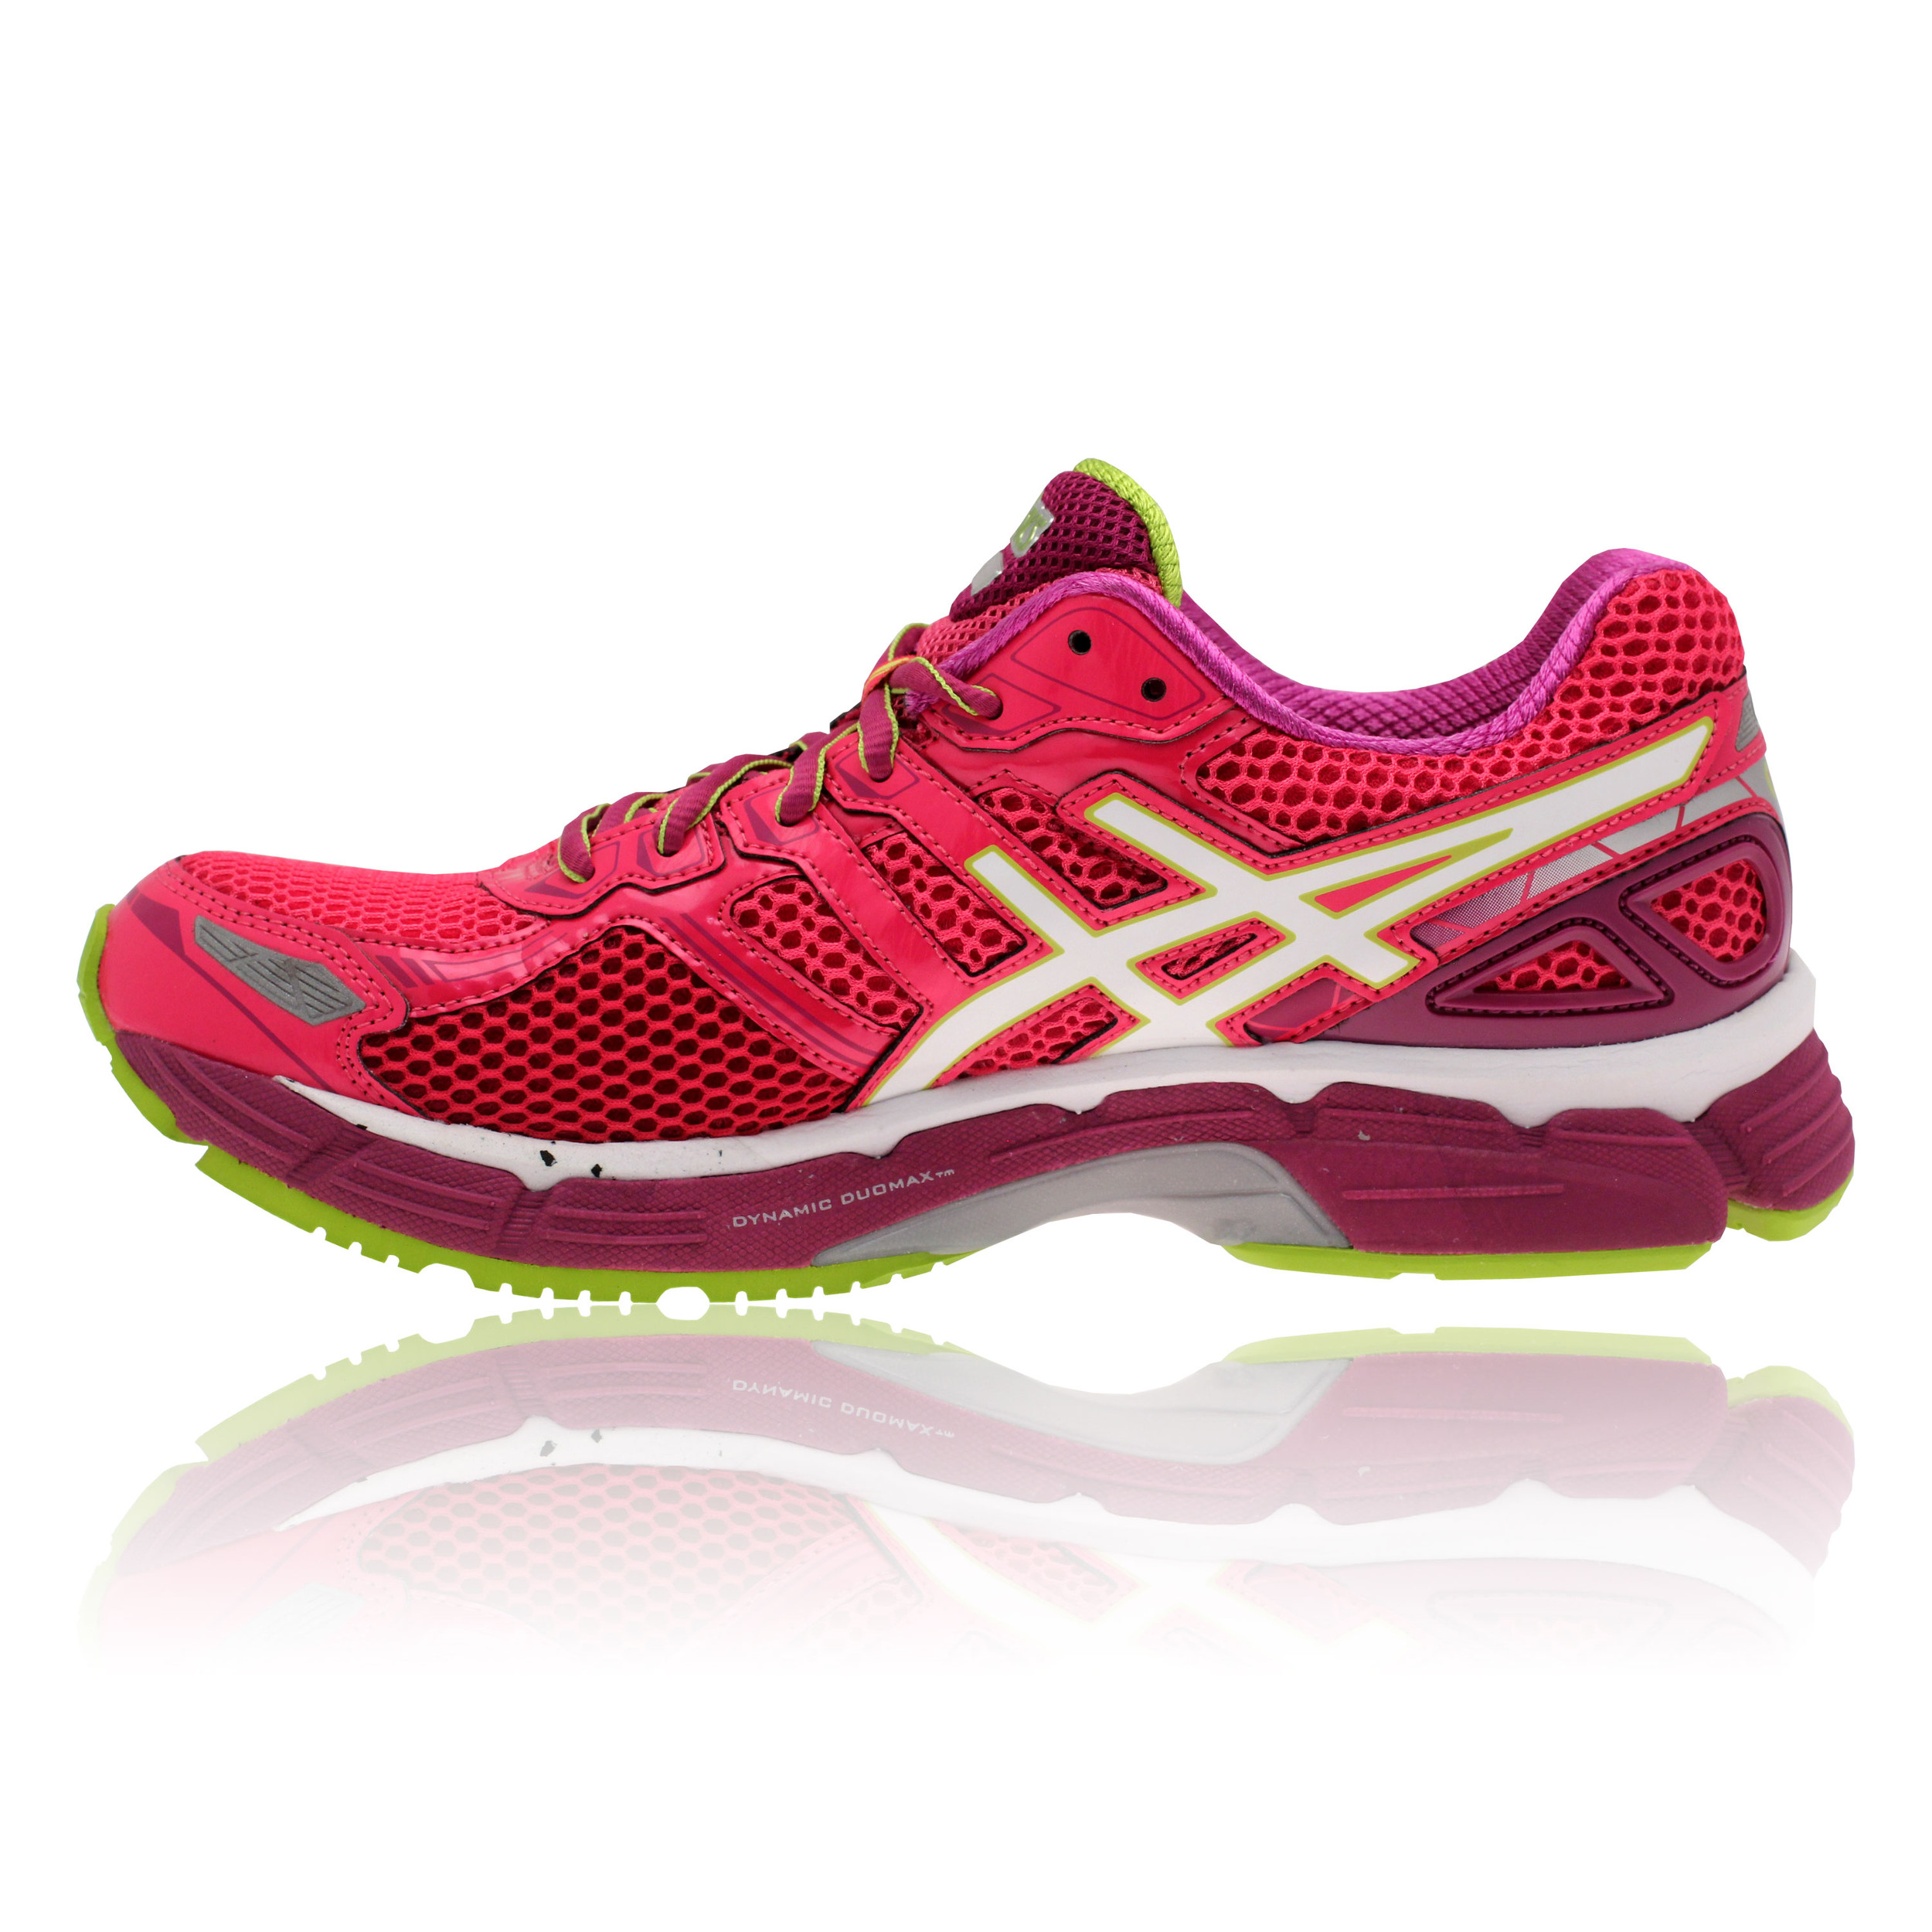 asics gt 3000 2 women 39 s running shoes 50 off. Black Bedroom Furniture Sets. Home Design Ideas